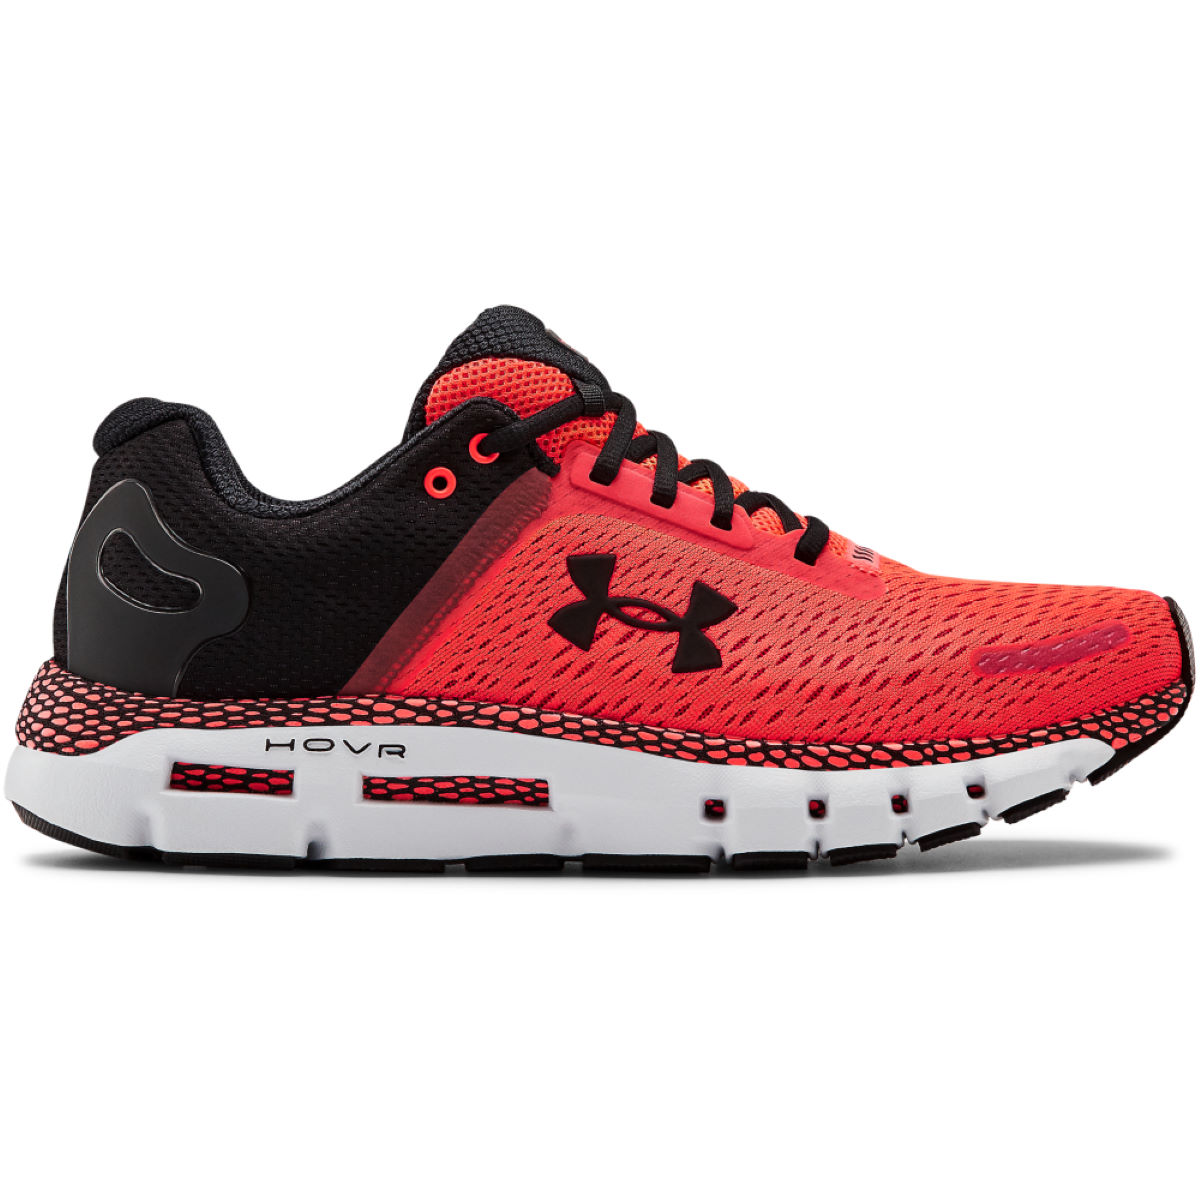 Under Armour Under Armour HOVR Infinite 2 Running Shoe   Running Shoes